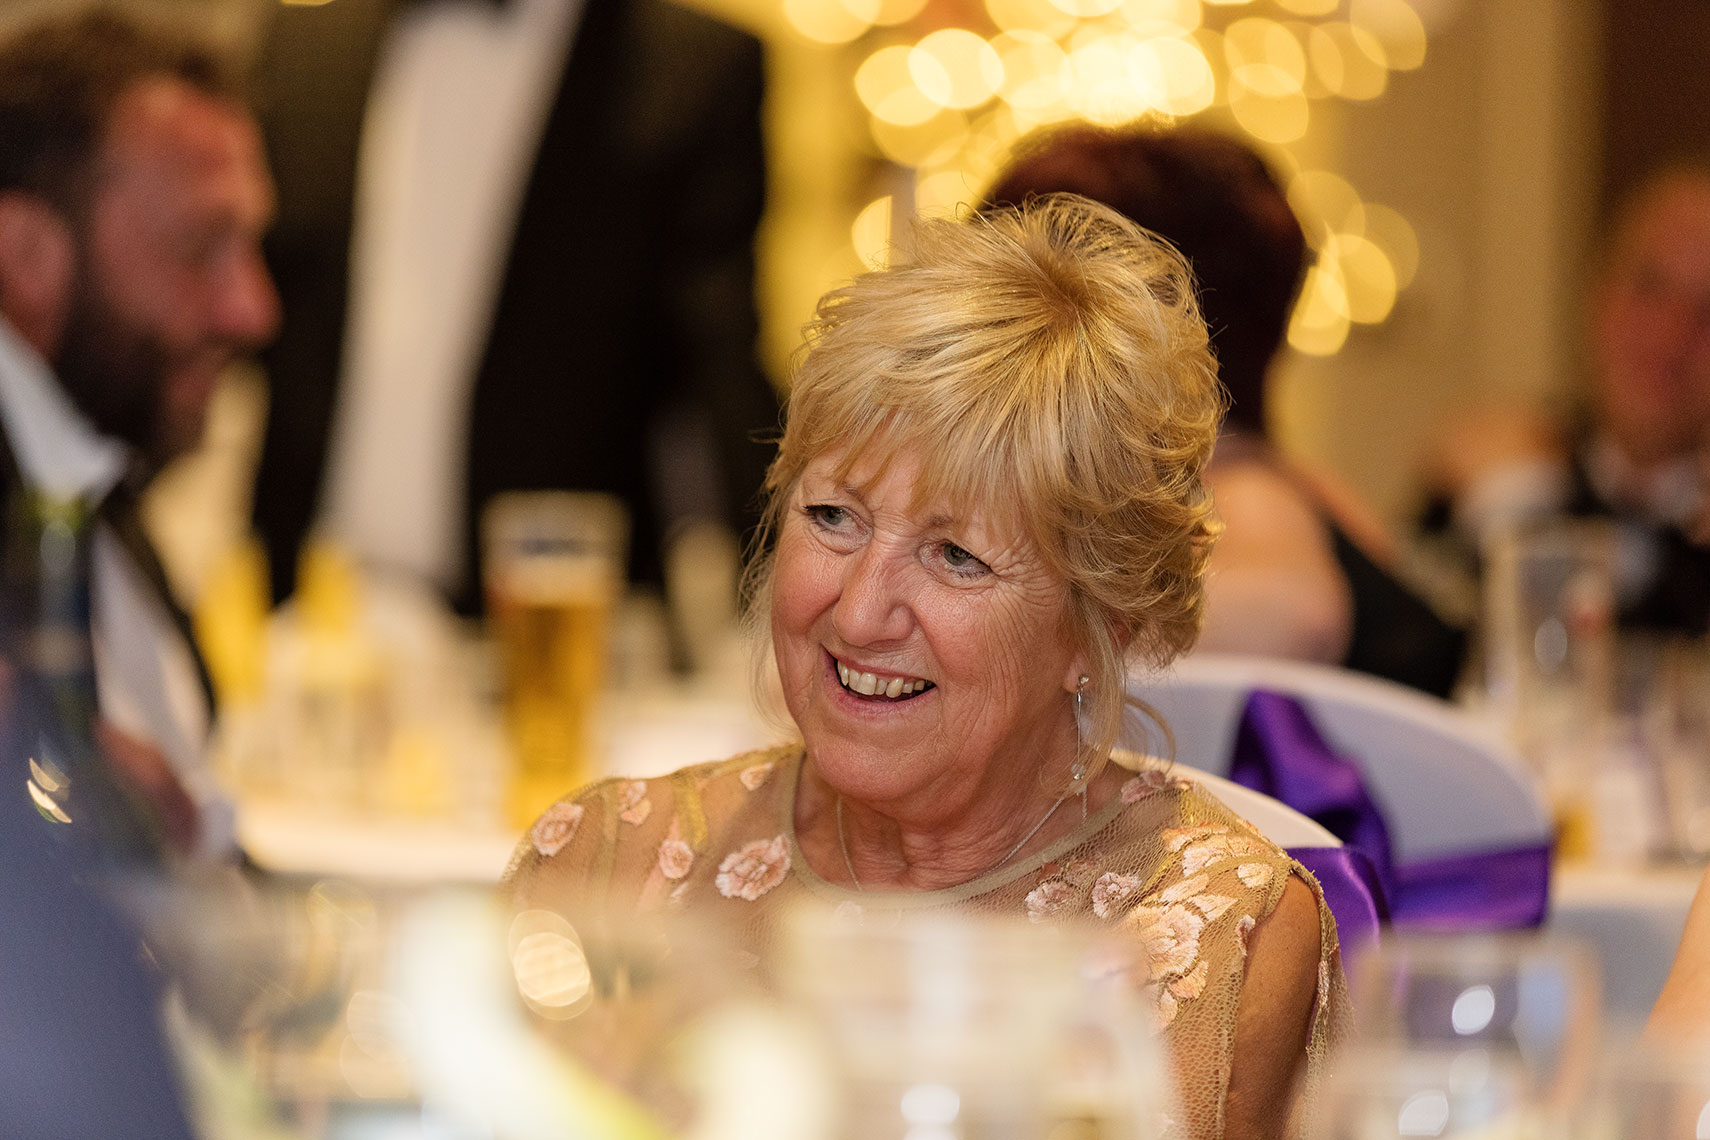 Smiling older lady wearing ornate  golden gown watching speaker at birthday reception